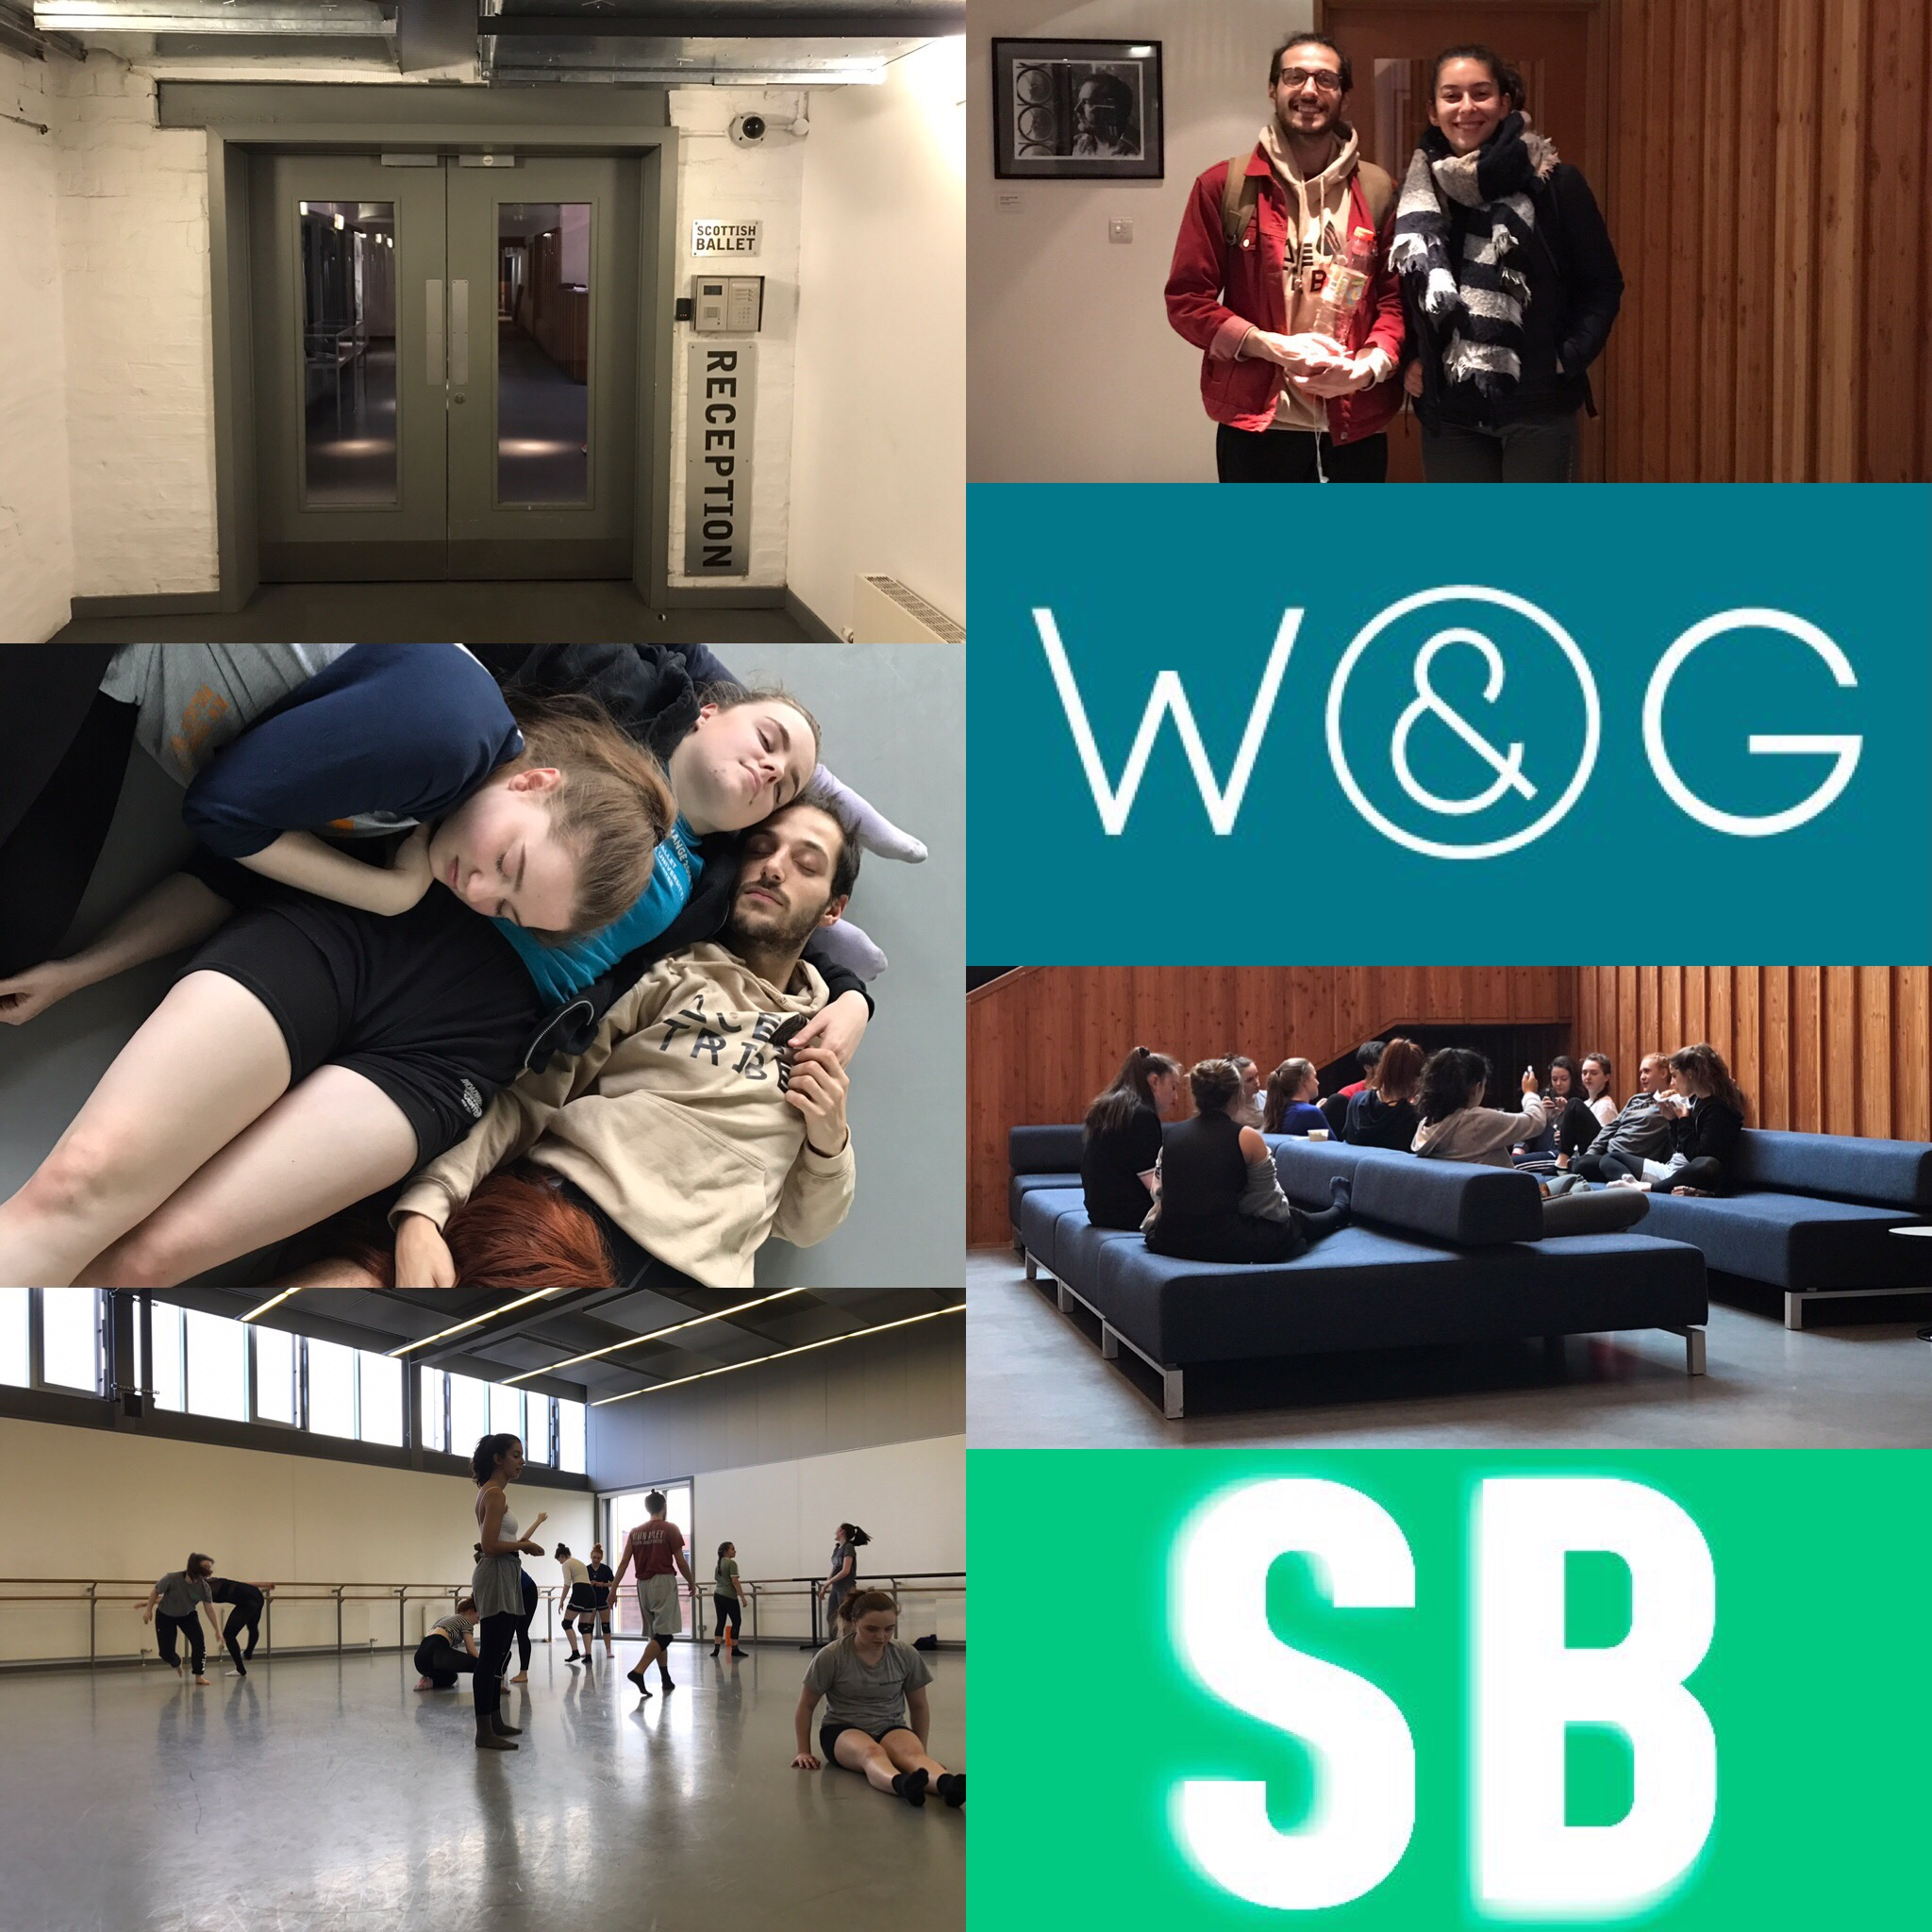 Thank you to everyone at Scottish Ballet Youth Exchange for what was an amazing week in the studio.Well done to all the dancers for your commitment and hard work. Much respect all!